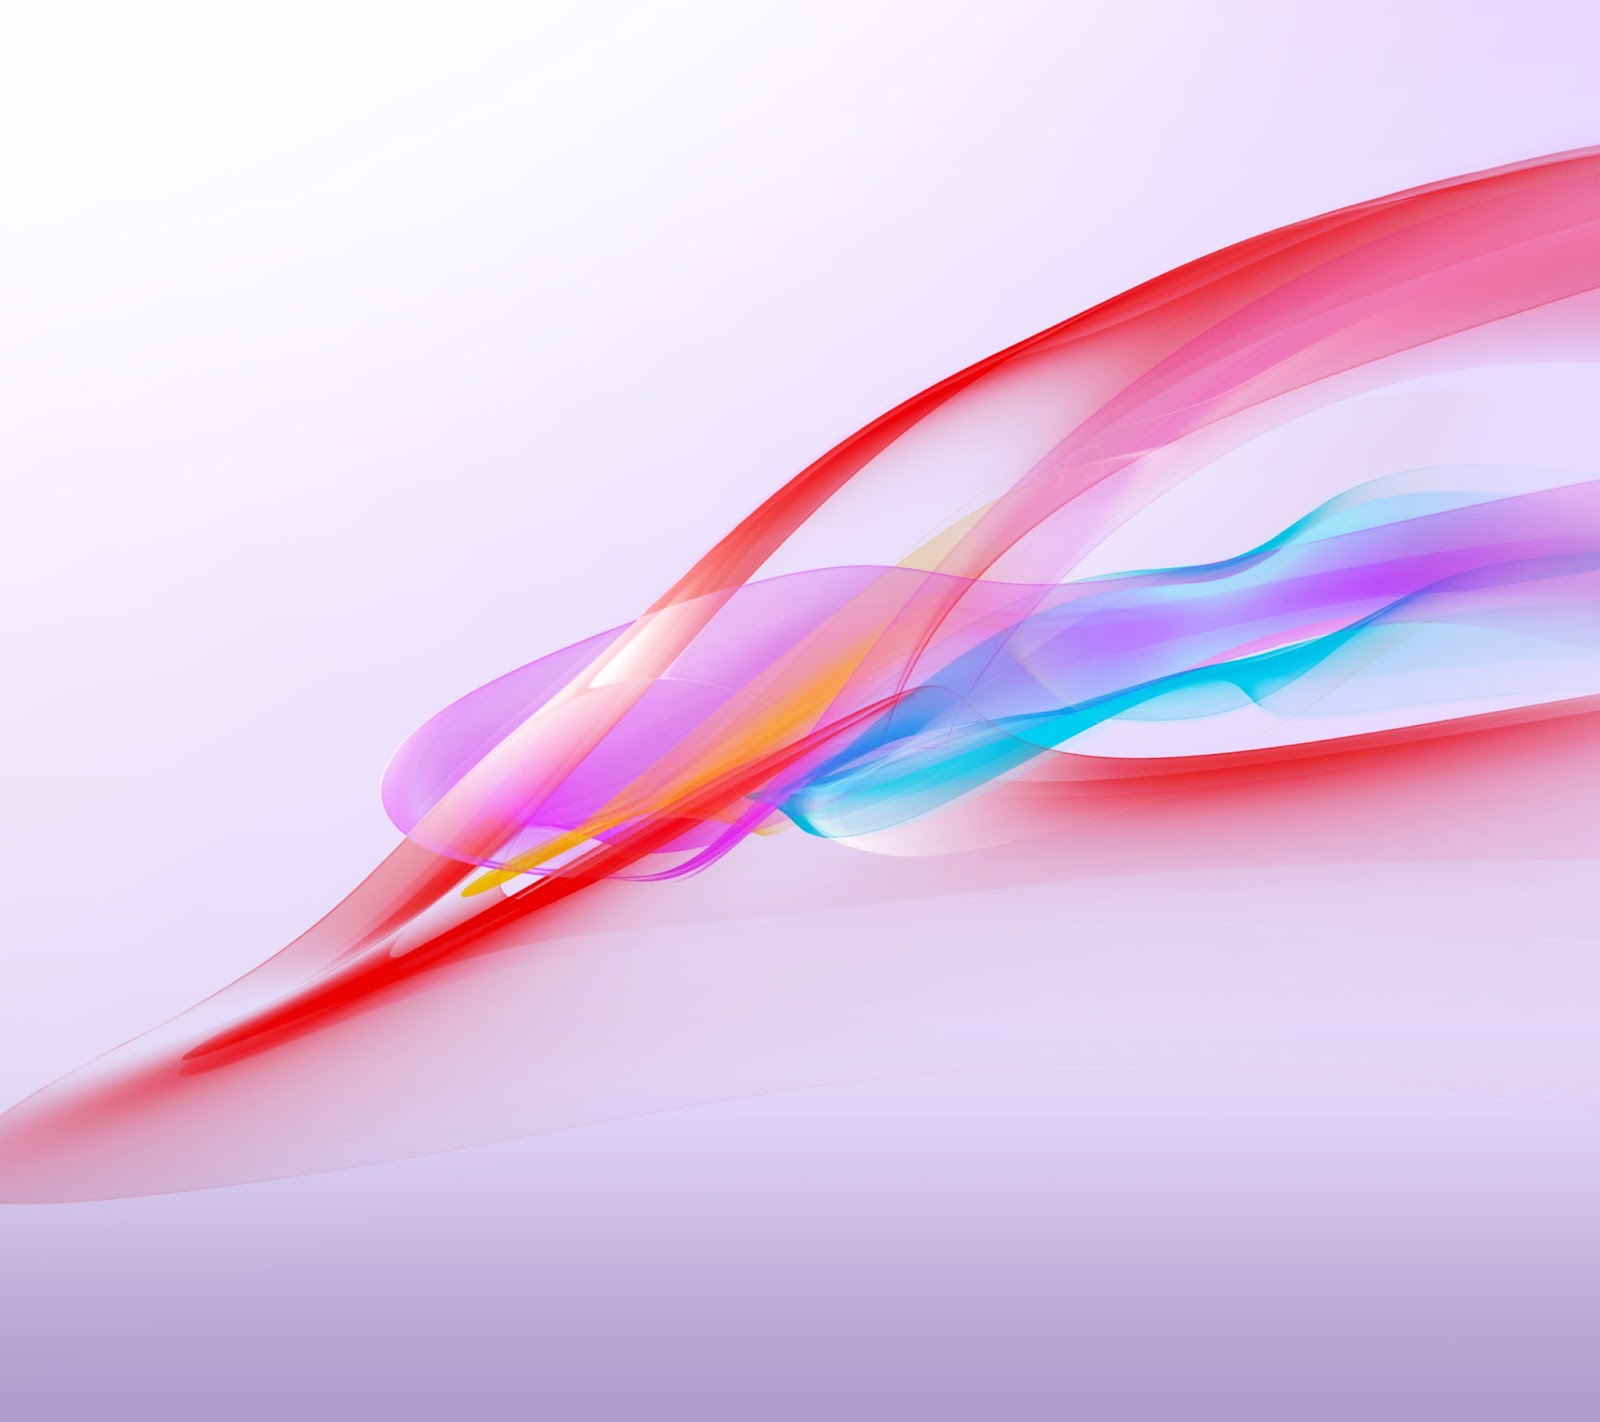 sony xperia m hd wallpapers